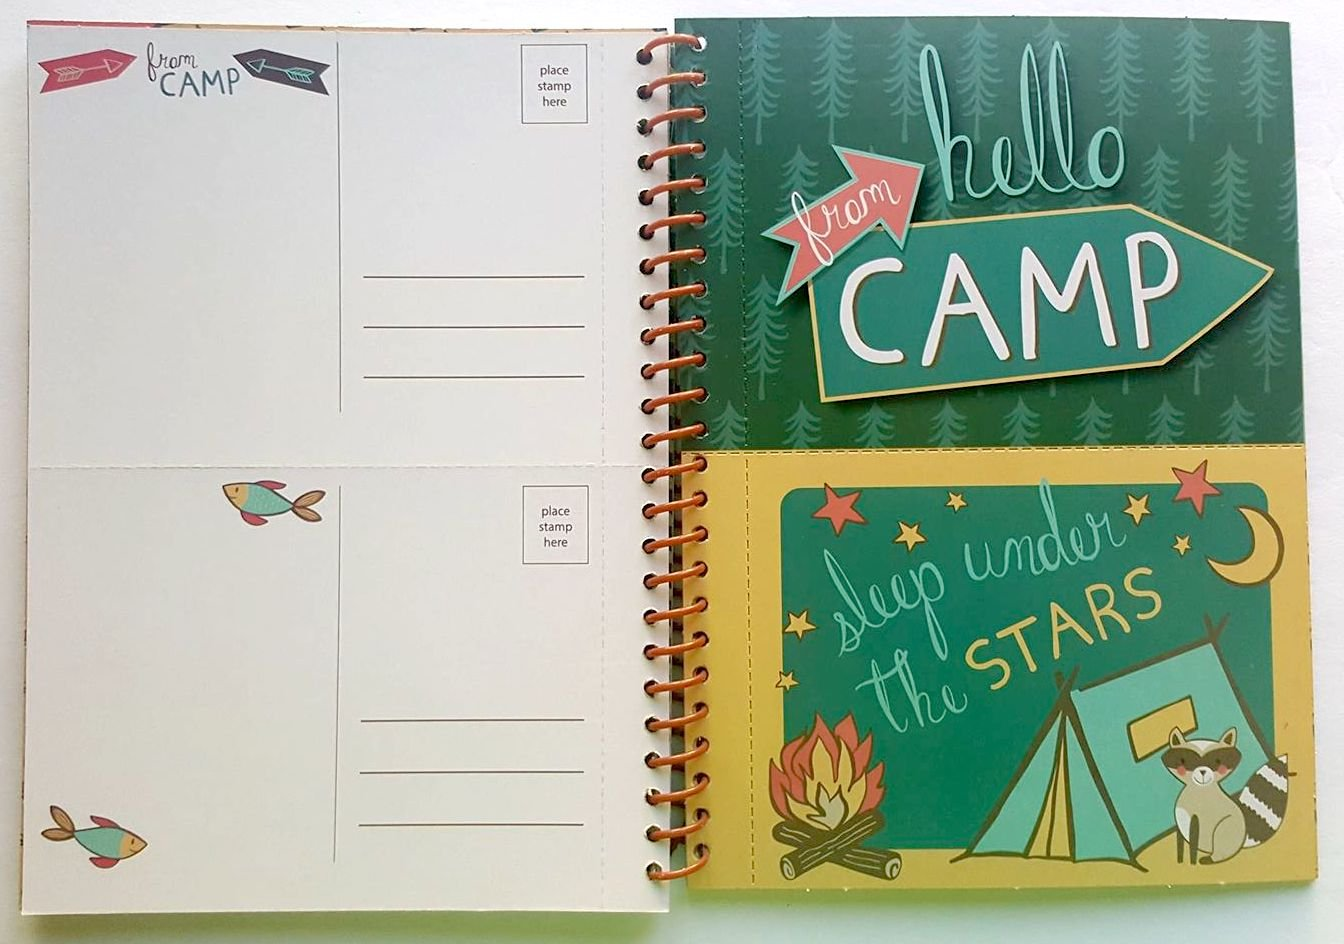 Camp Journal And Activity Book made our CampingForFoodies hand-selected list of 100+ Camping Stocking Stuffers For RV And Tent Campers!